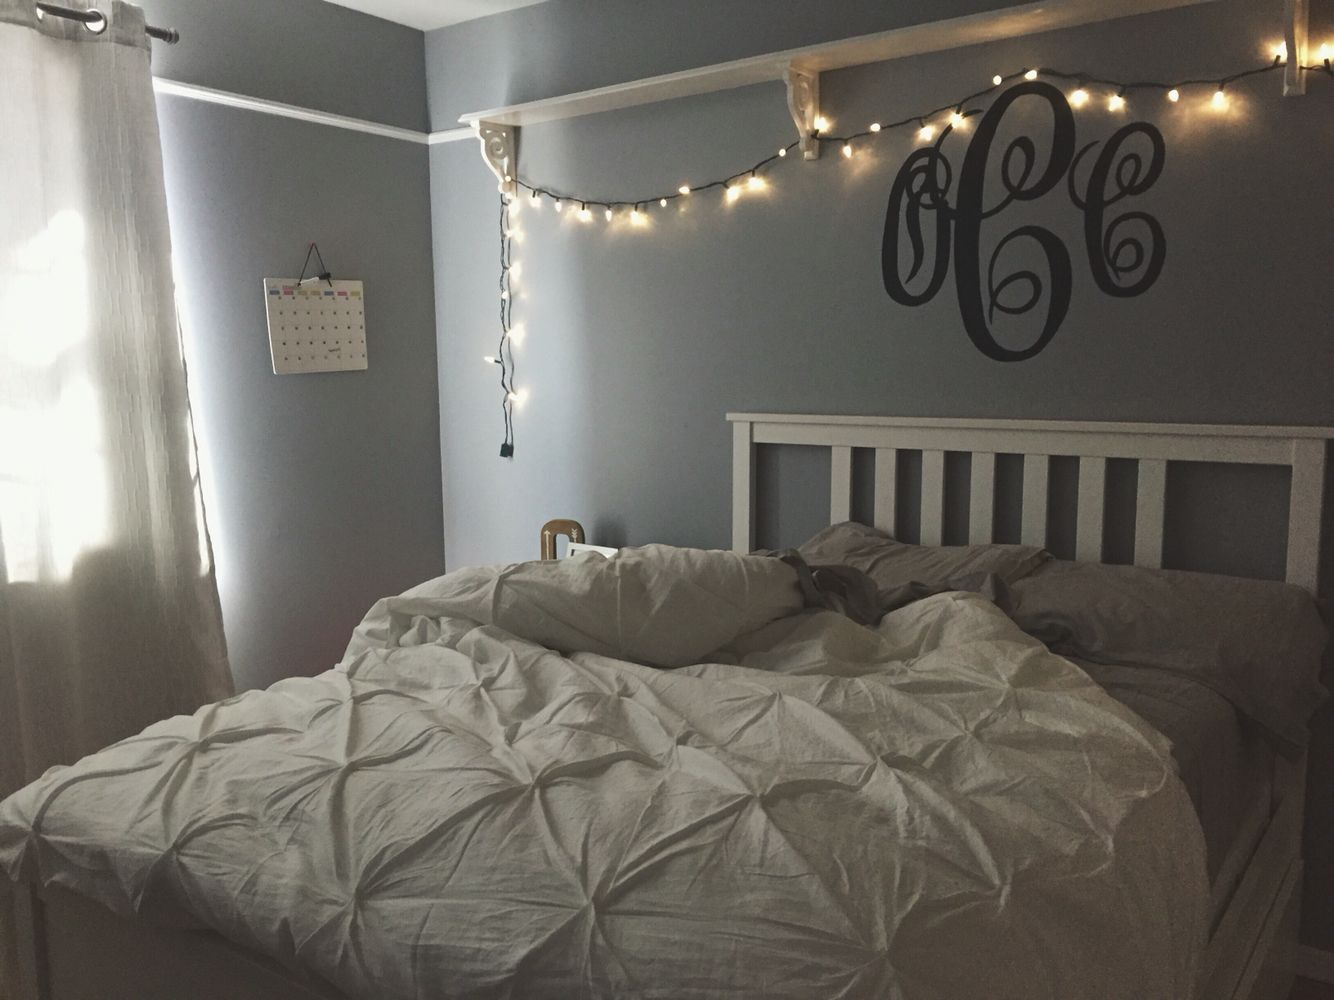 My room teenage bedroom fairy lights grey white bedroom for Bedroom ideas grey bed